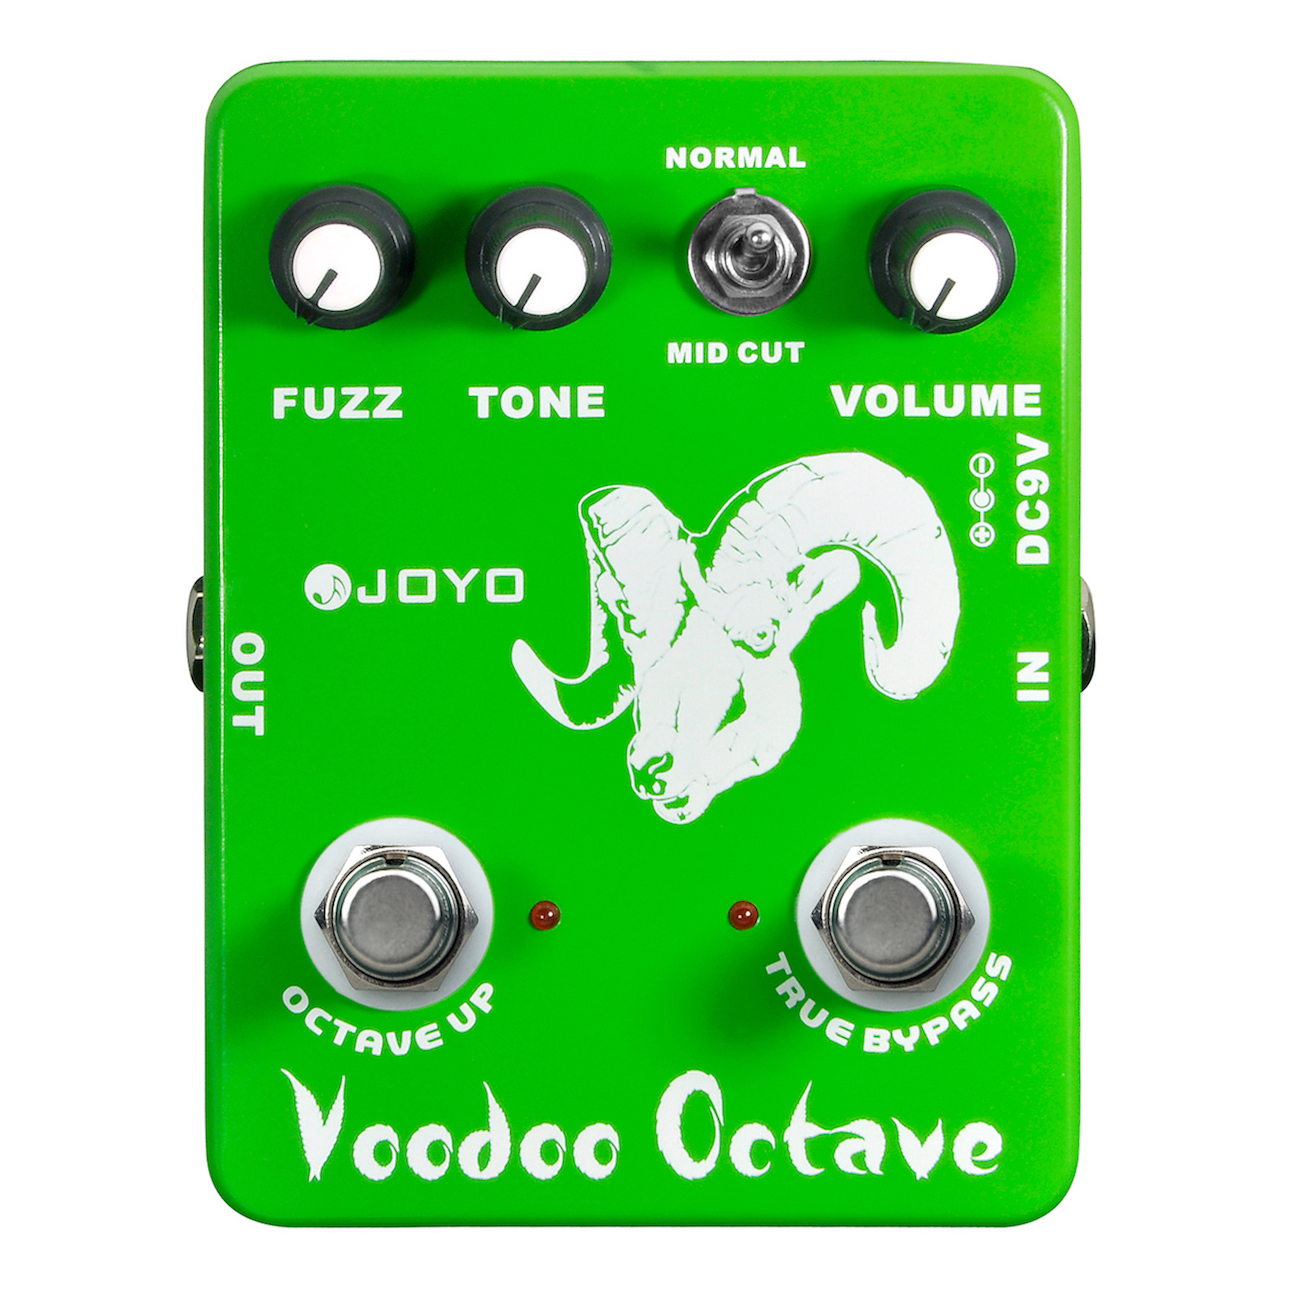 JOYO JF-12 Voodoo Octave Electric Guitar Effect Pedal True Bypass JF 12